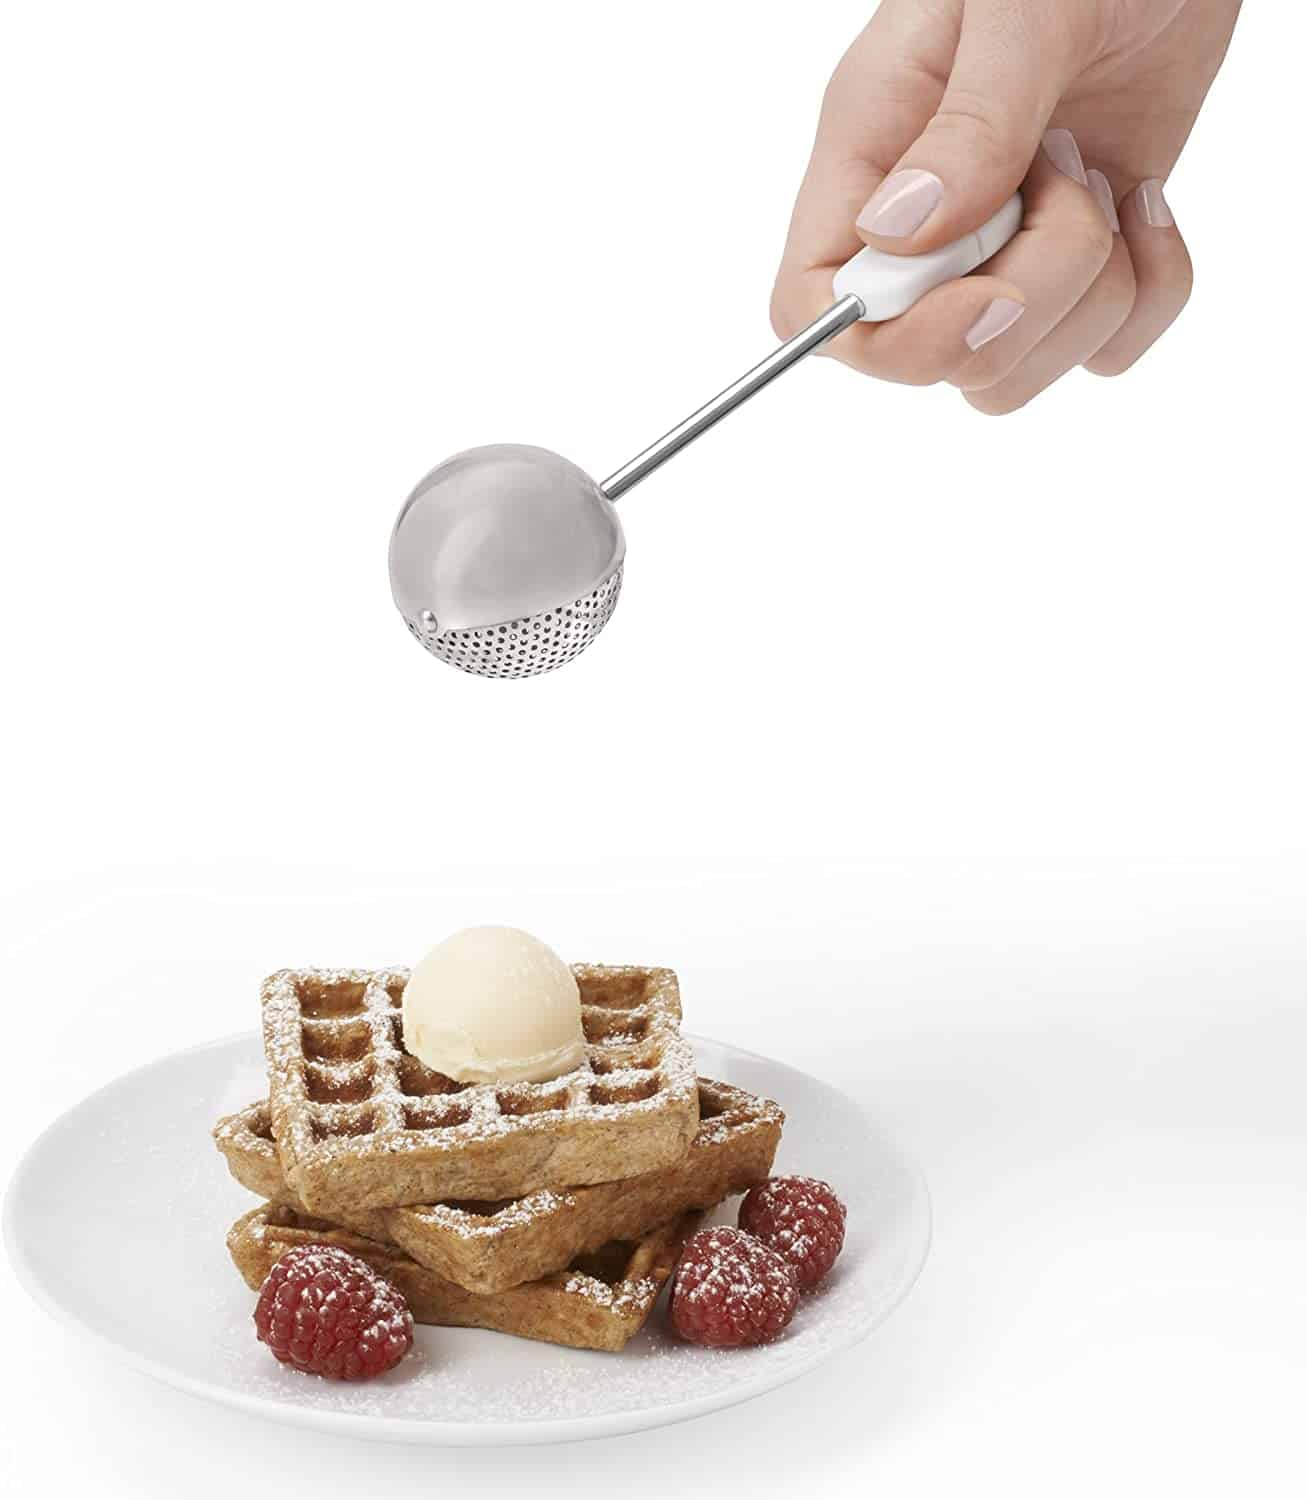 Dusting wand being used to drop powdered sugar over a waffle and berries